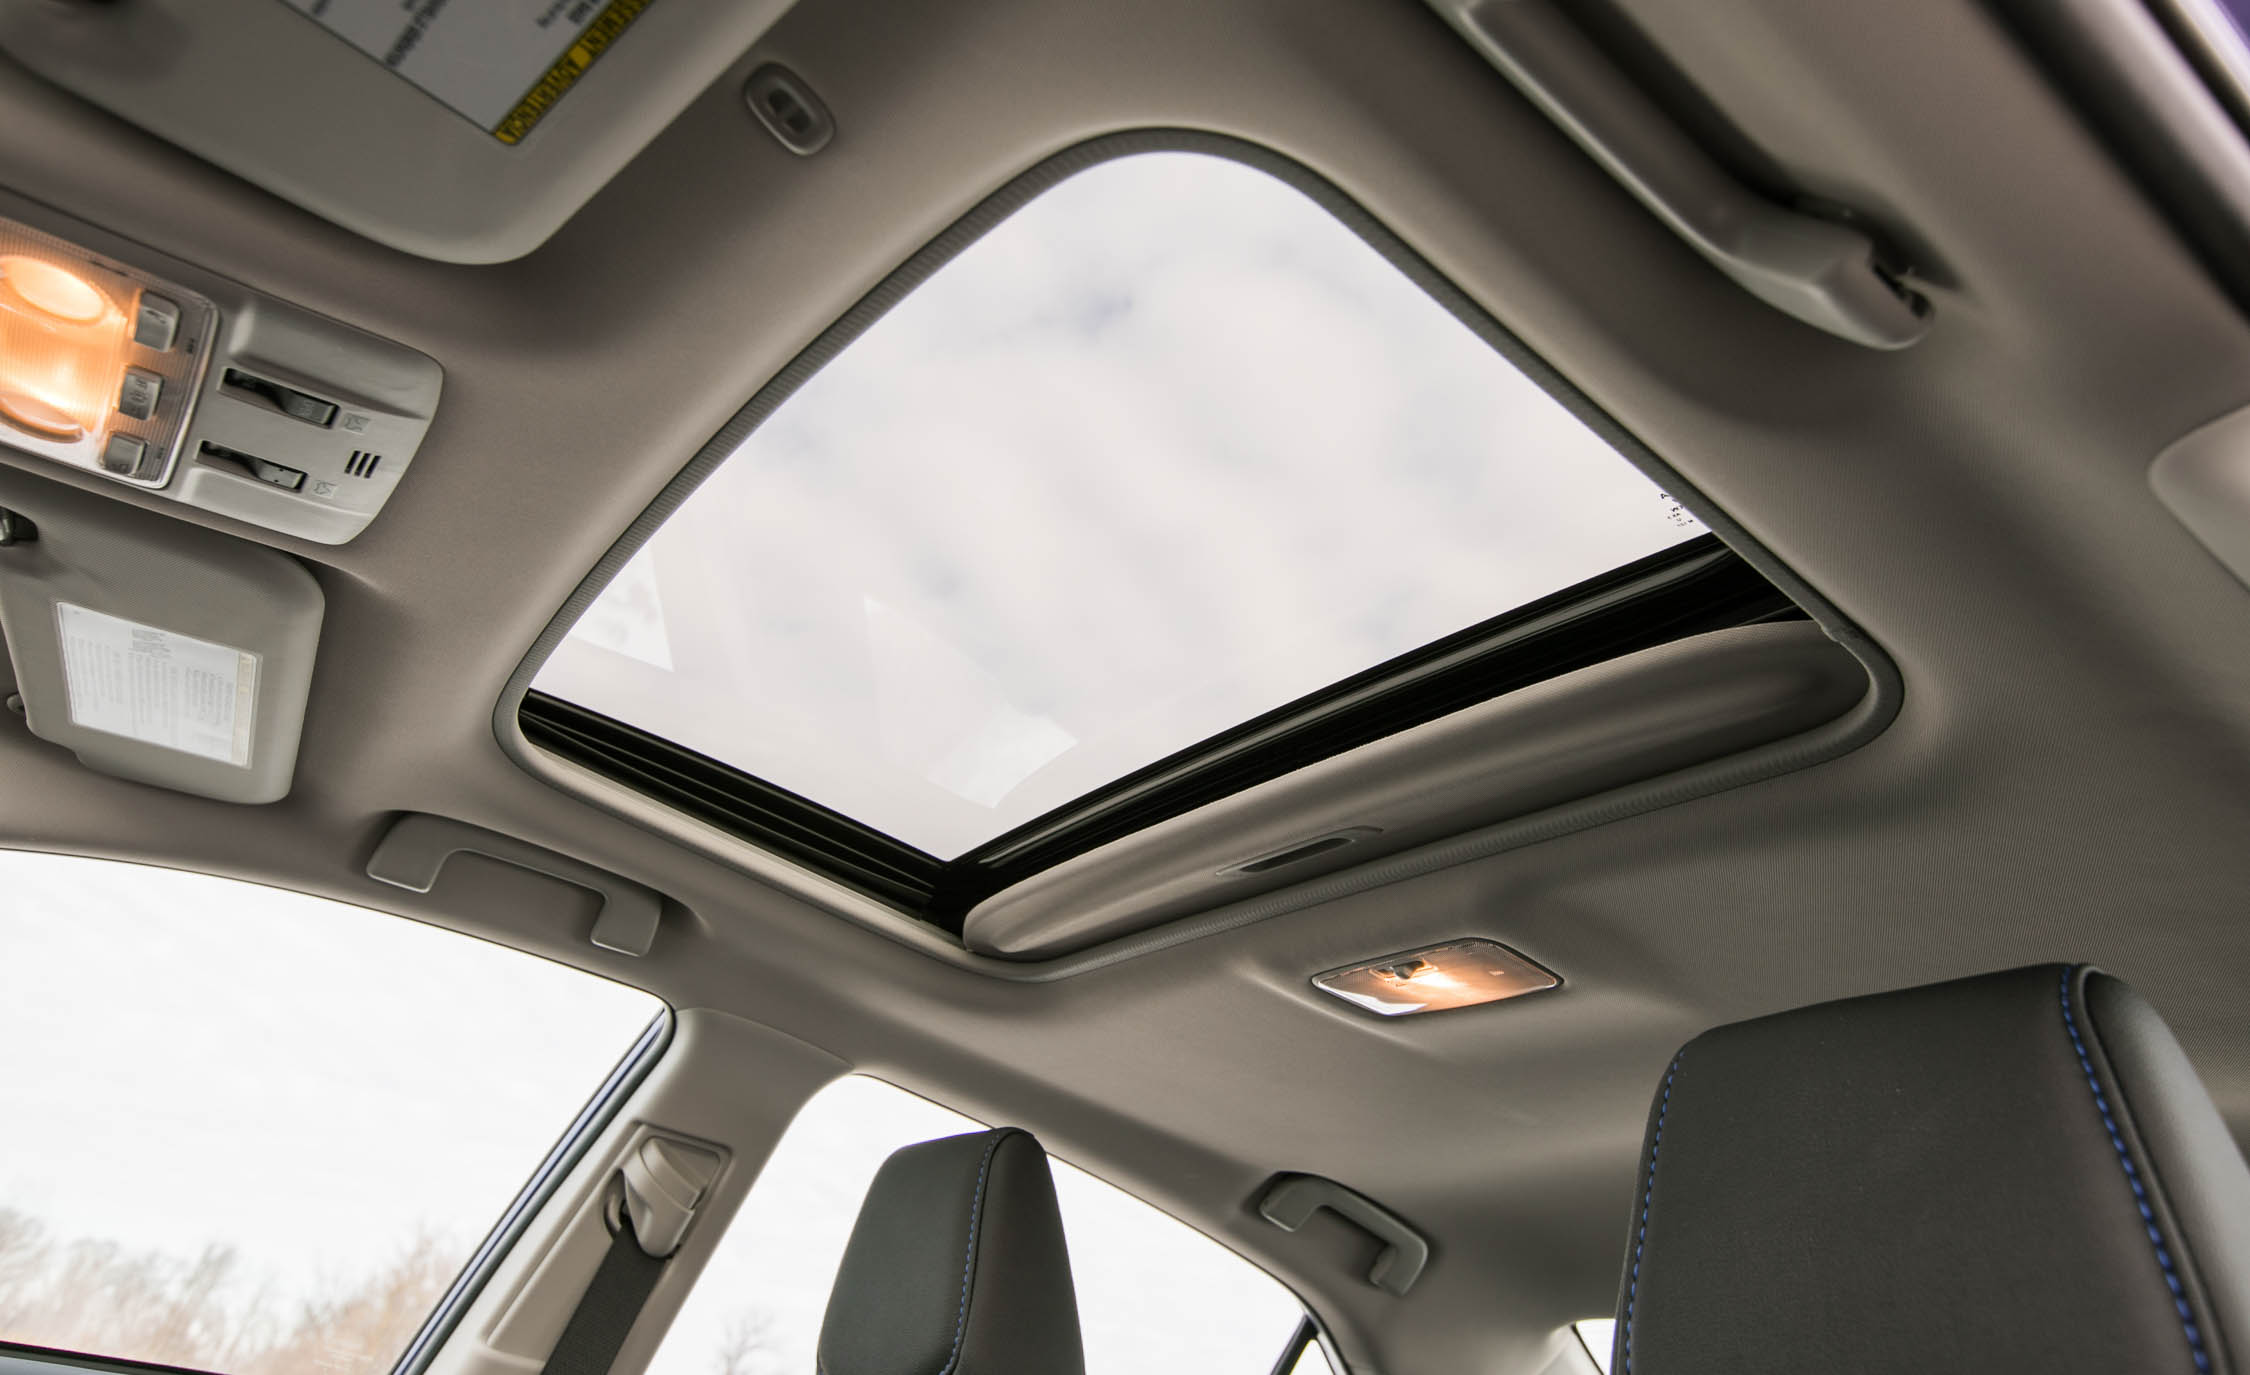 2017 Toyota Corolla XSE Interior View Sunroof (Photo 65 of 75)